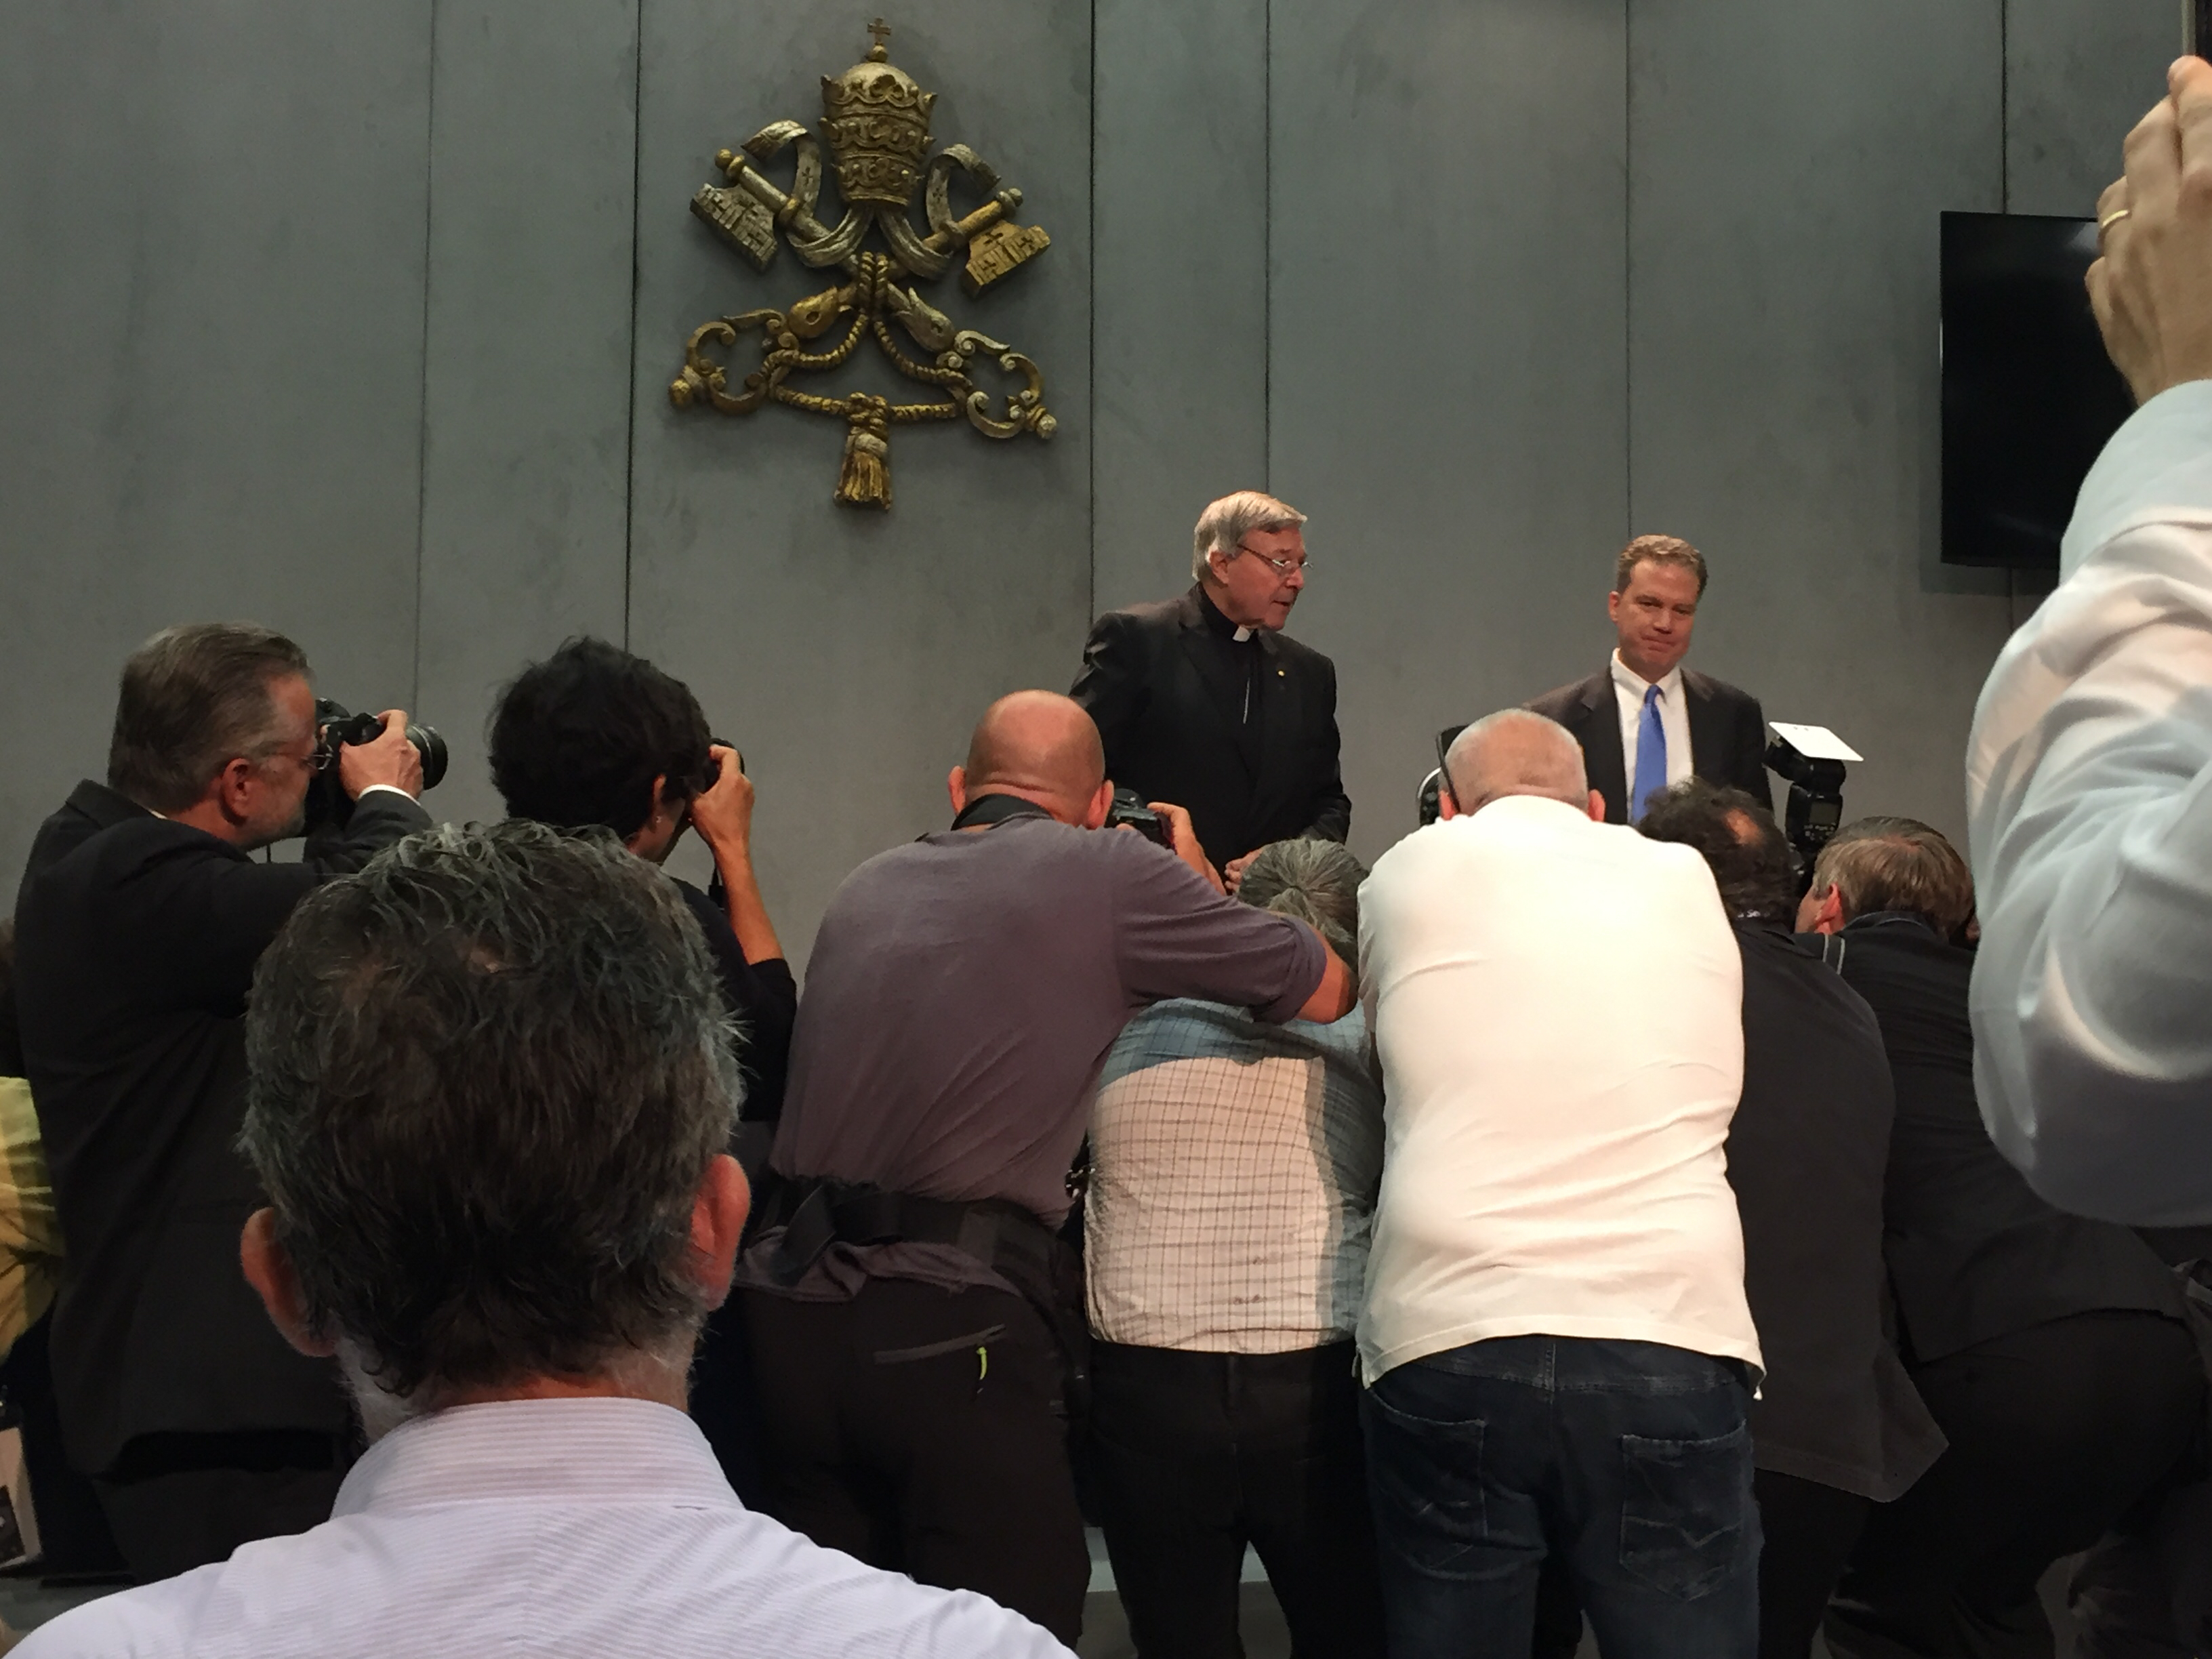 Cardinal Pell and Greg Burke speaking to the press (photo by author)